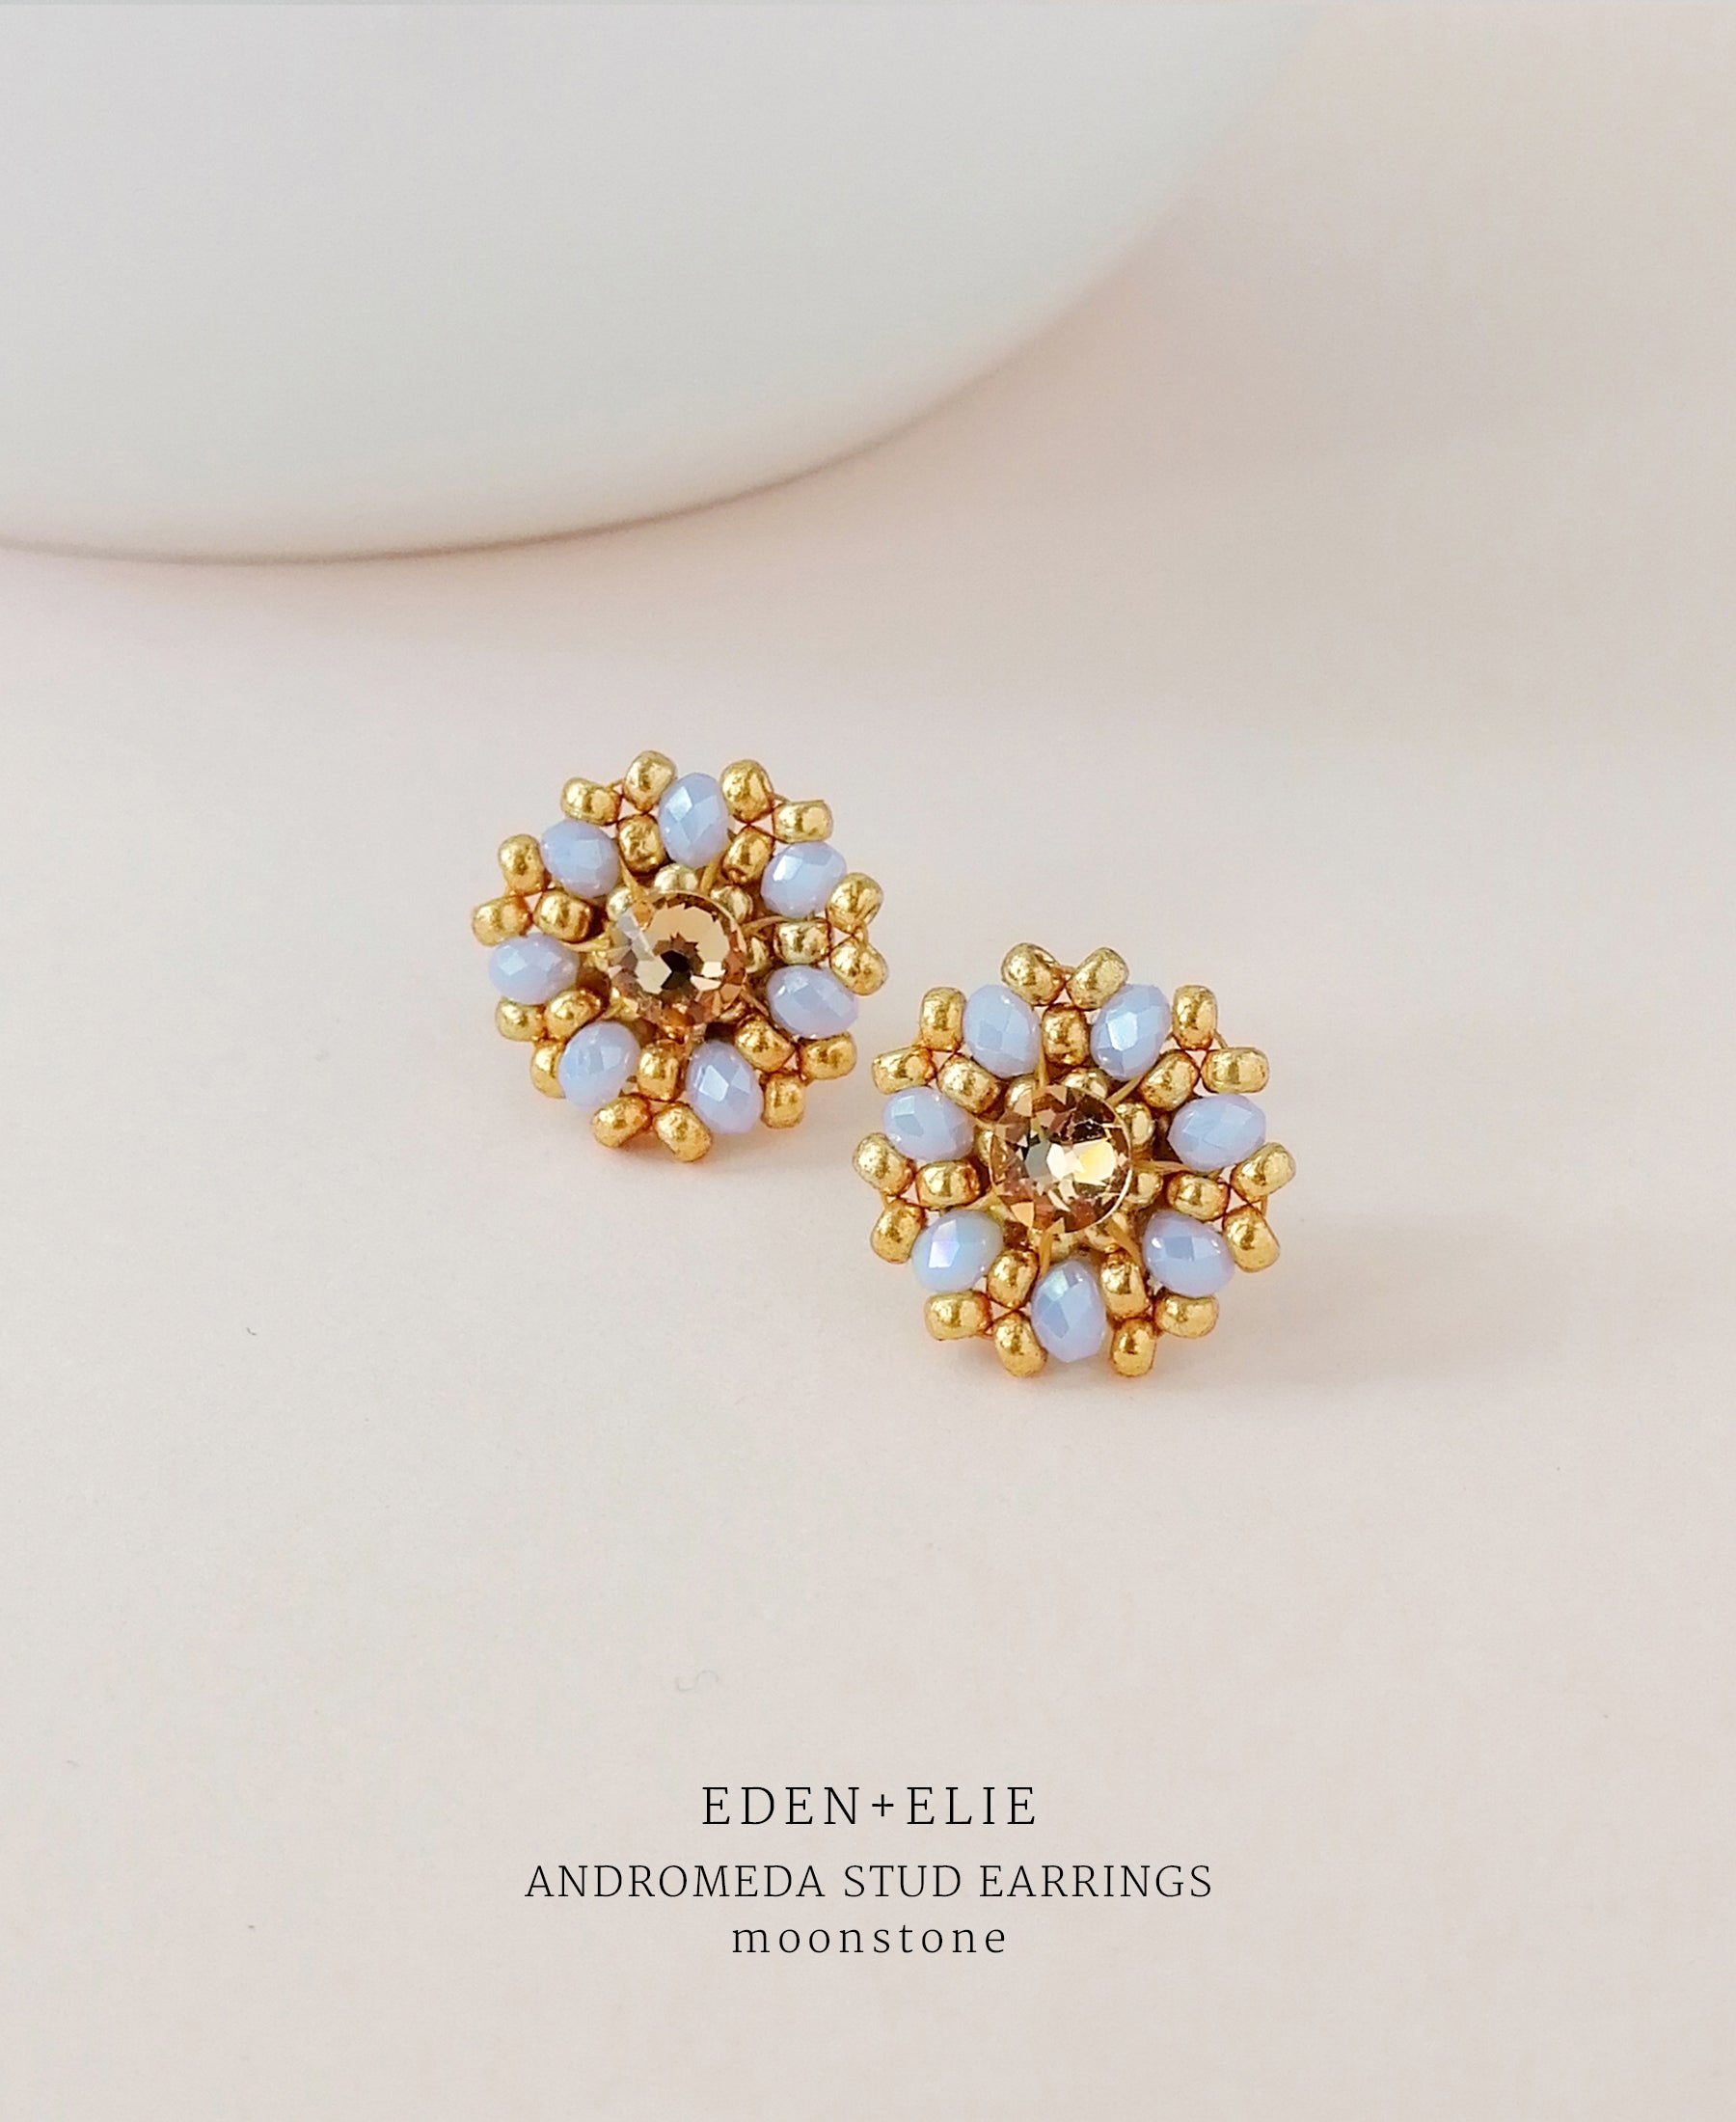 DEN + ELIE Andromeda gold plated jewelry stud earrings - moonstone